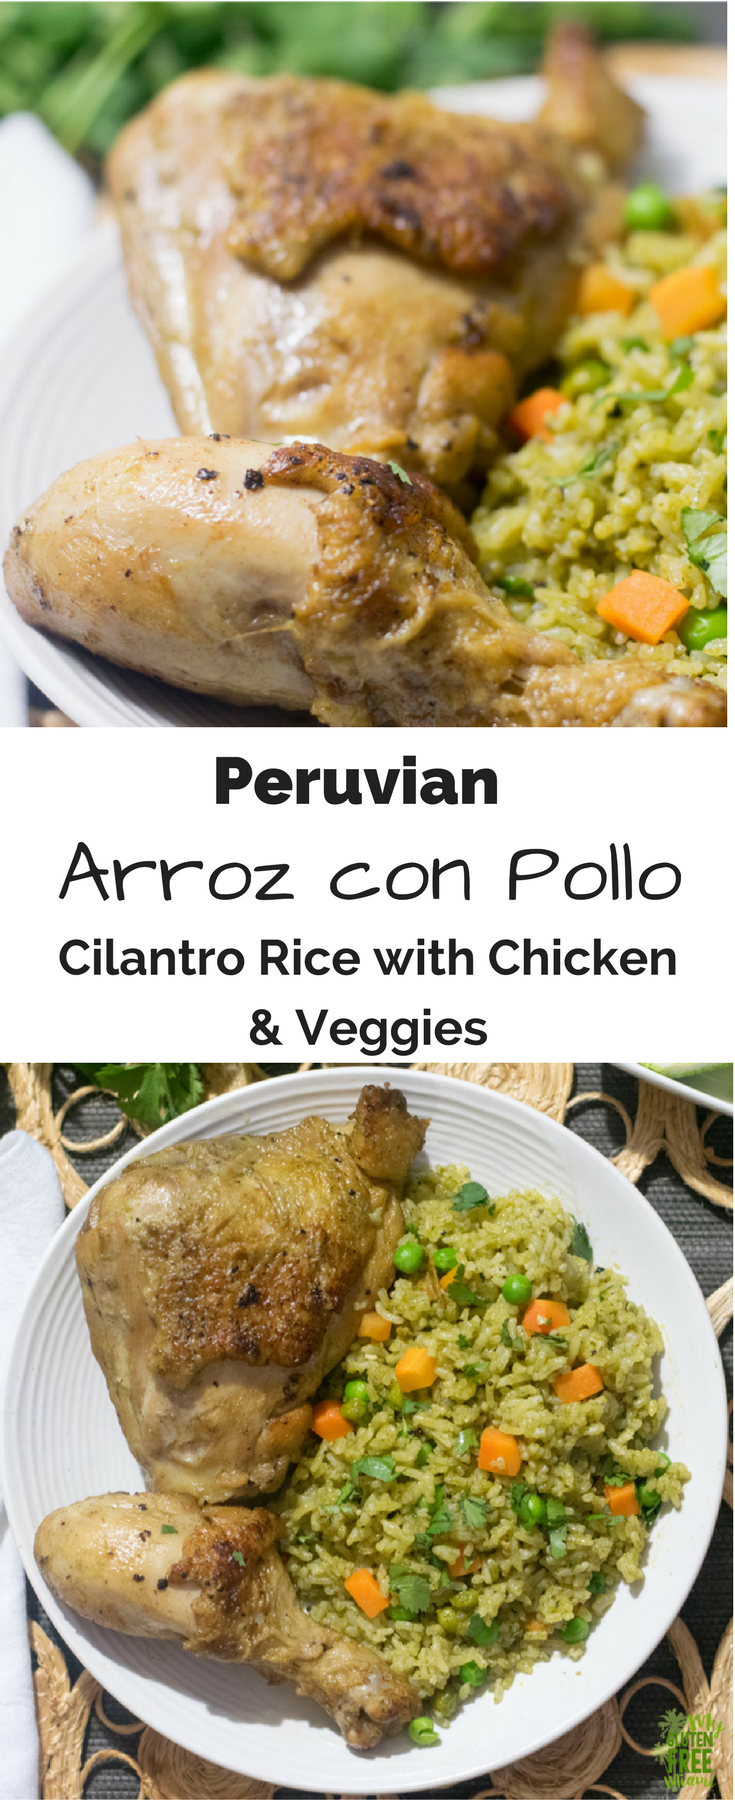 Arroz con Pollo, Peruvian Chicken with Cilantro Rice | Rezept ...